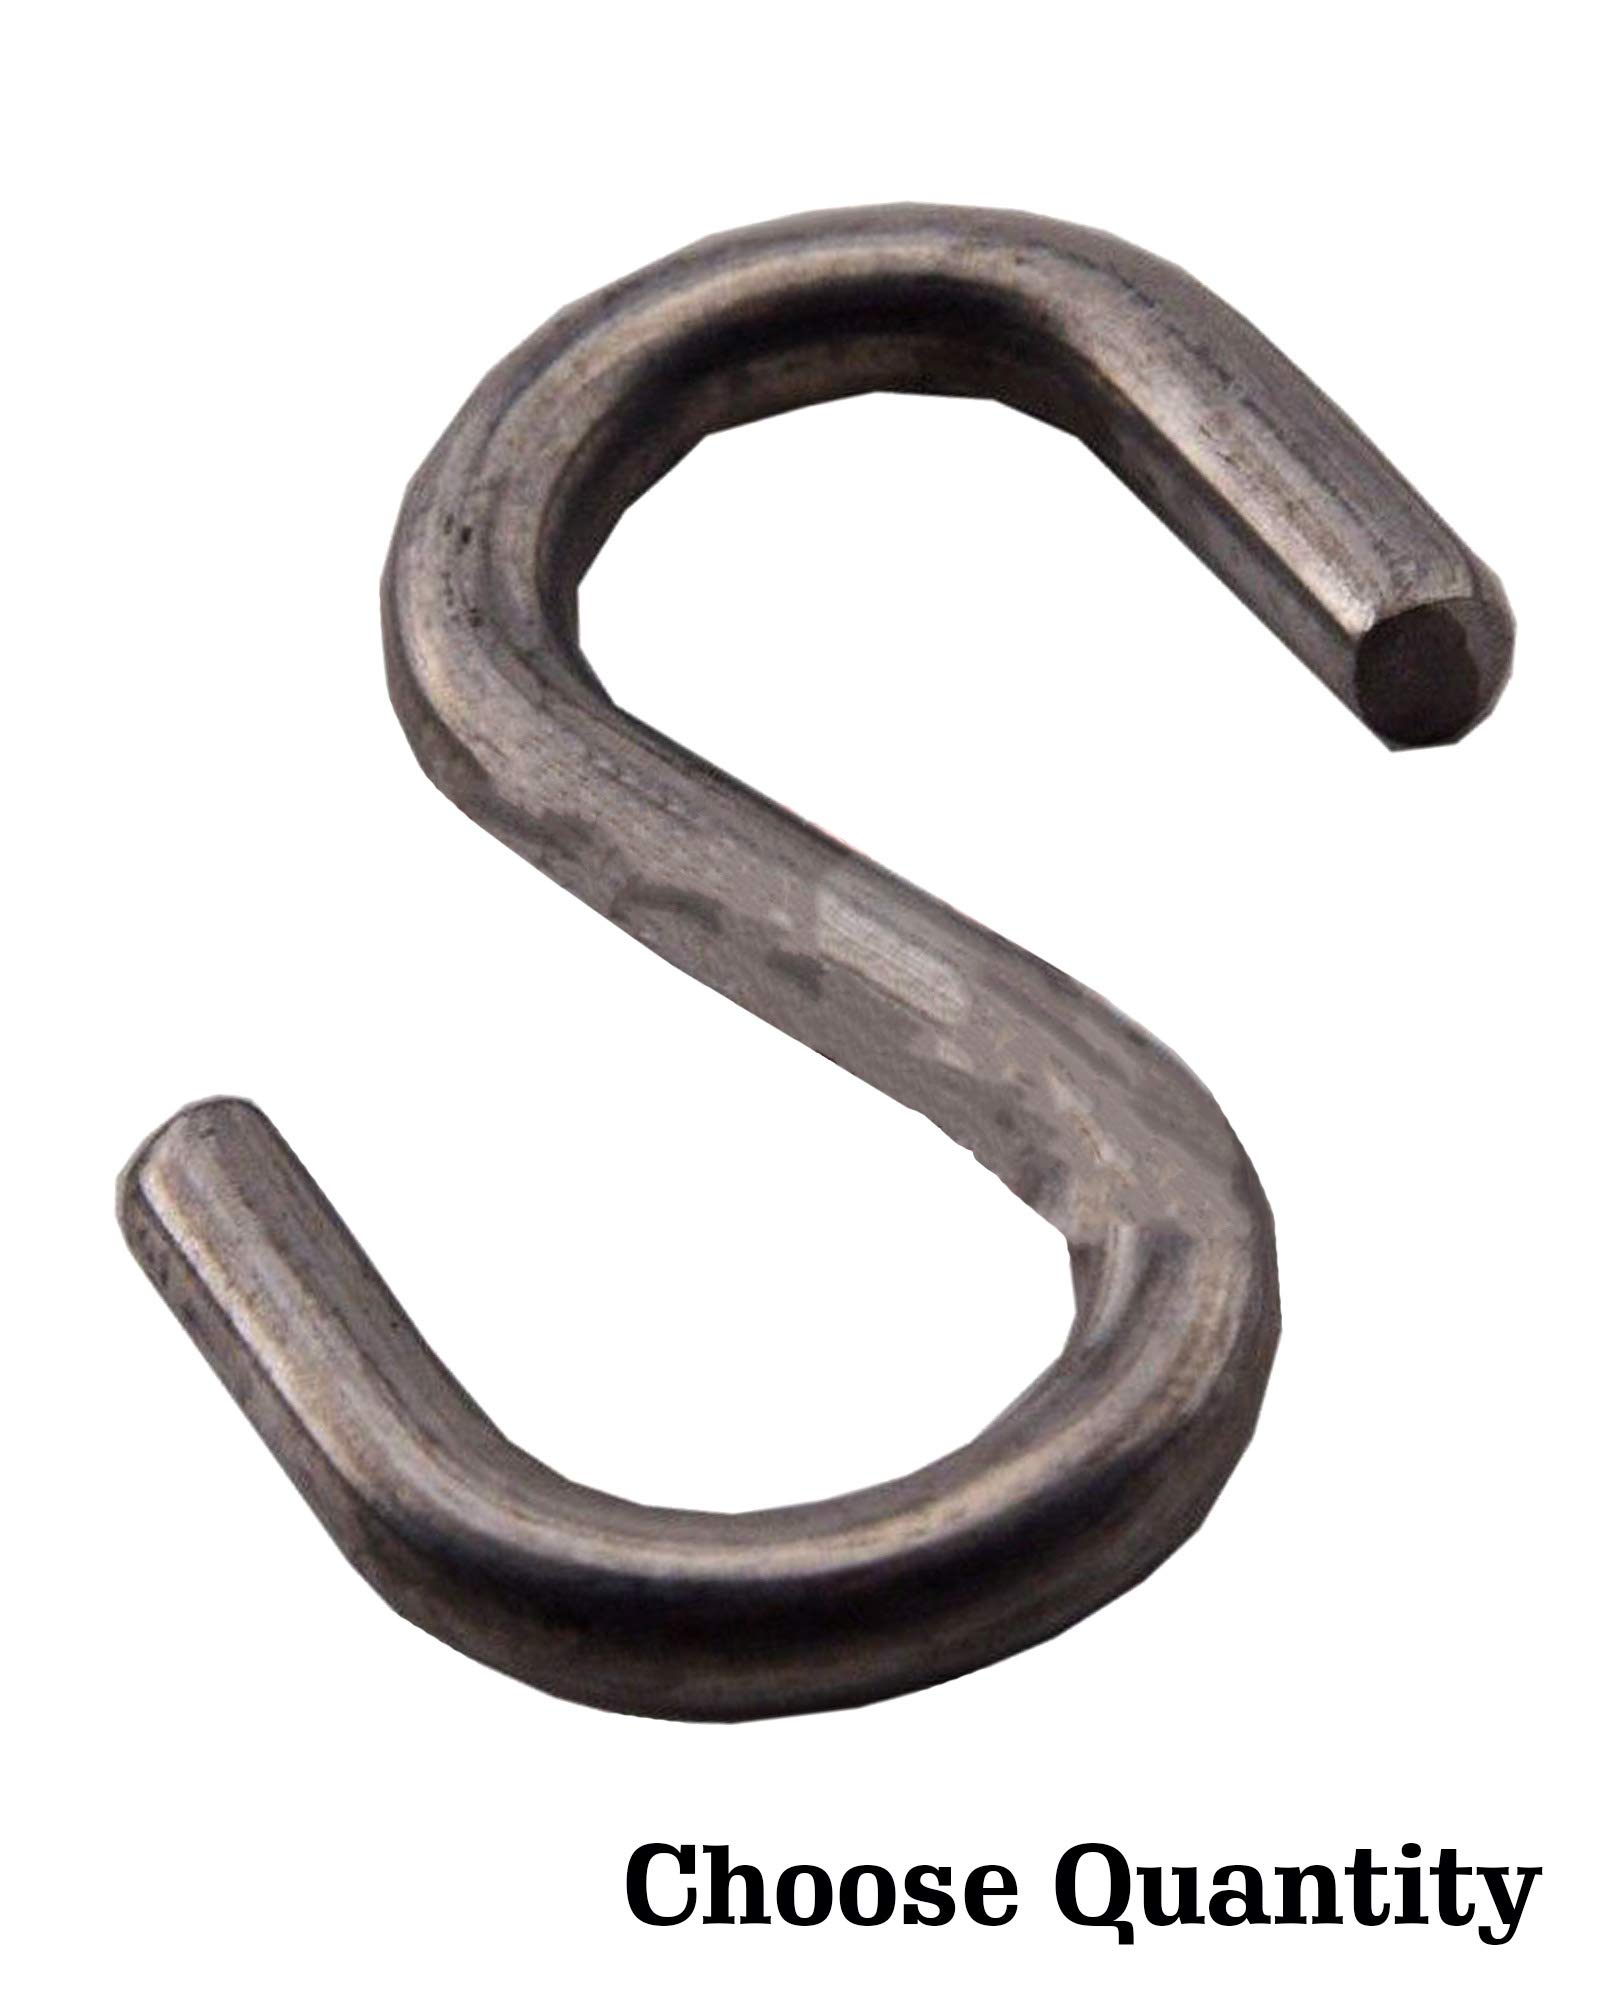 S Shaped Hooks S Hooks - Sash Chain S Hook, Zinc Finish, 1 Inch S Hooks for Hanging (25)